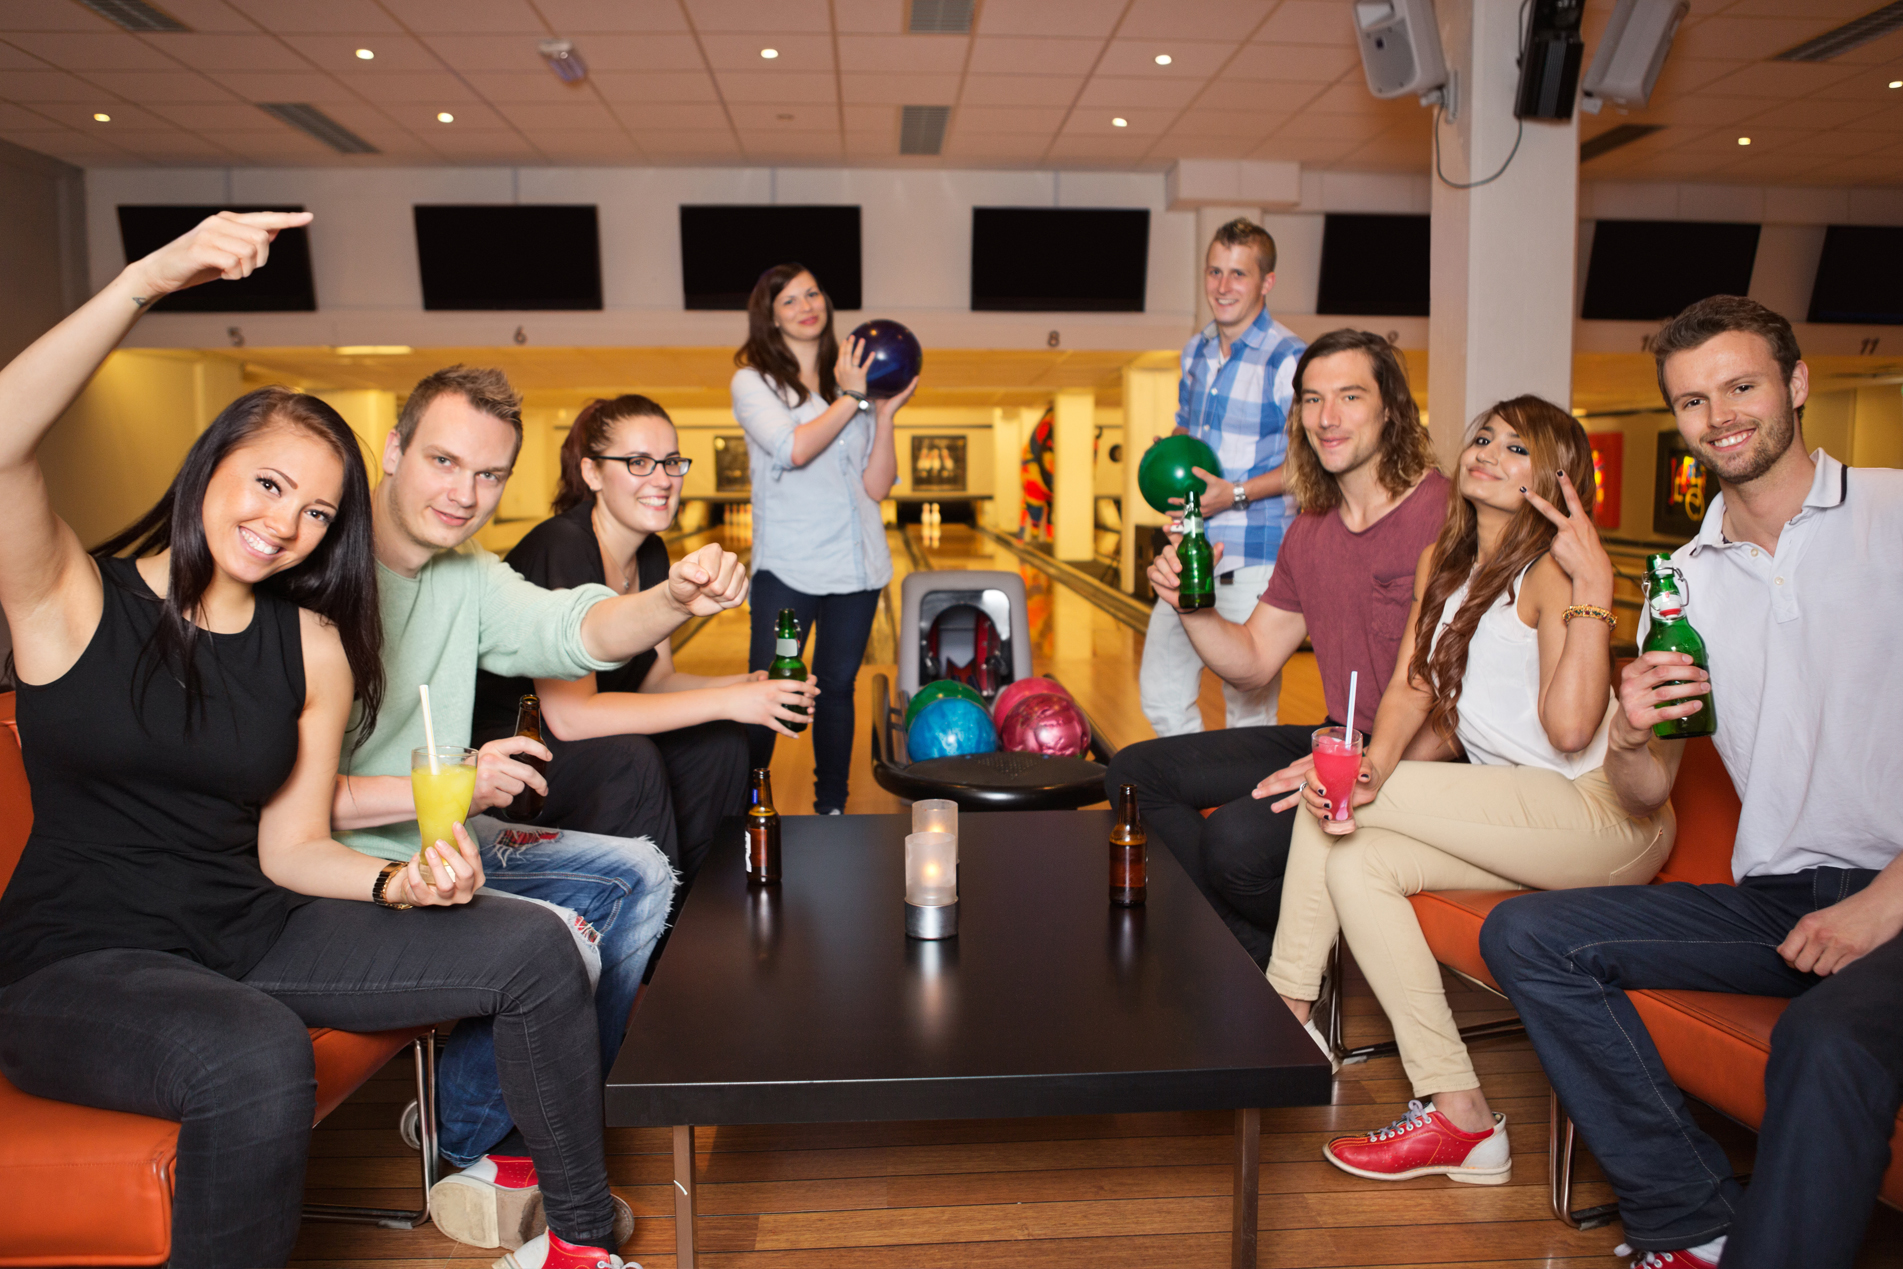 Group of friends at the bowling center having a good time